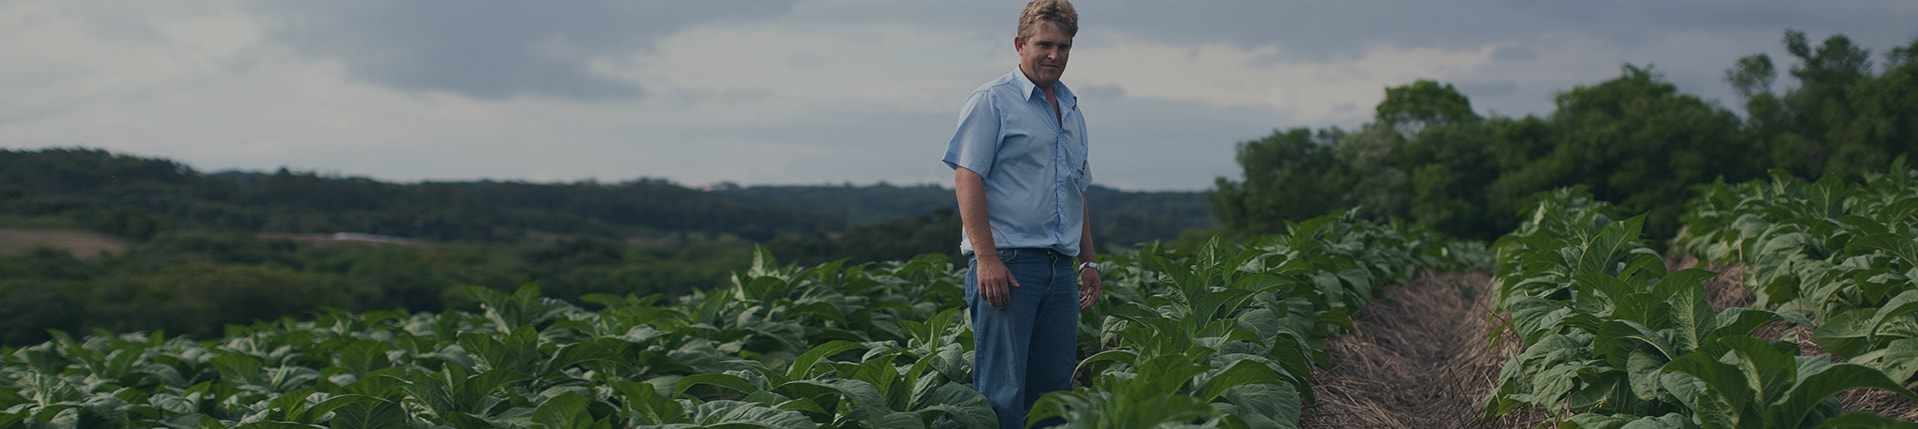 Discover what PMI is doing to protect the farm ecosystem